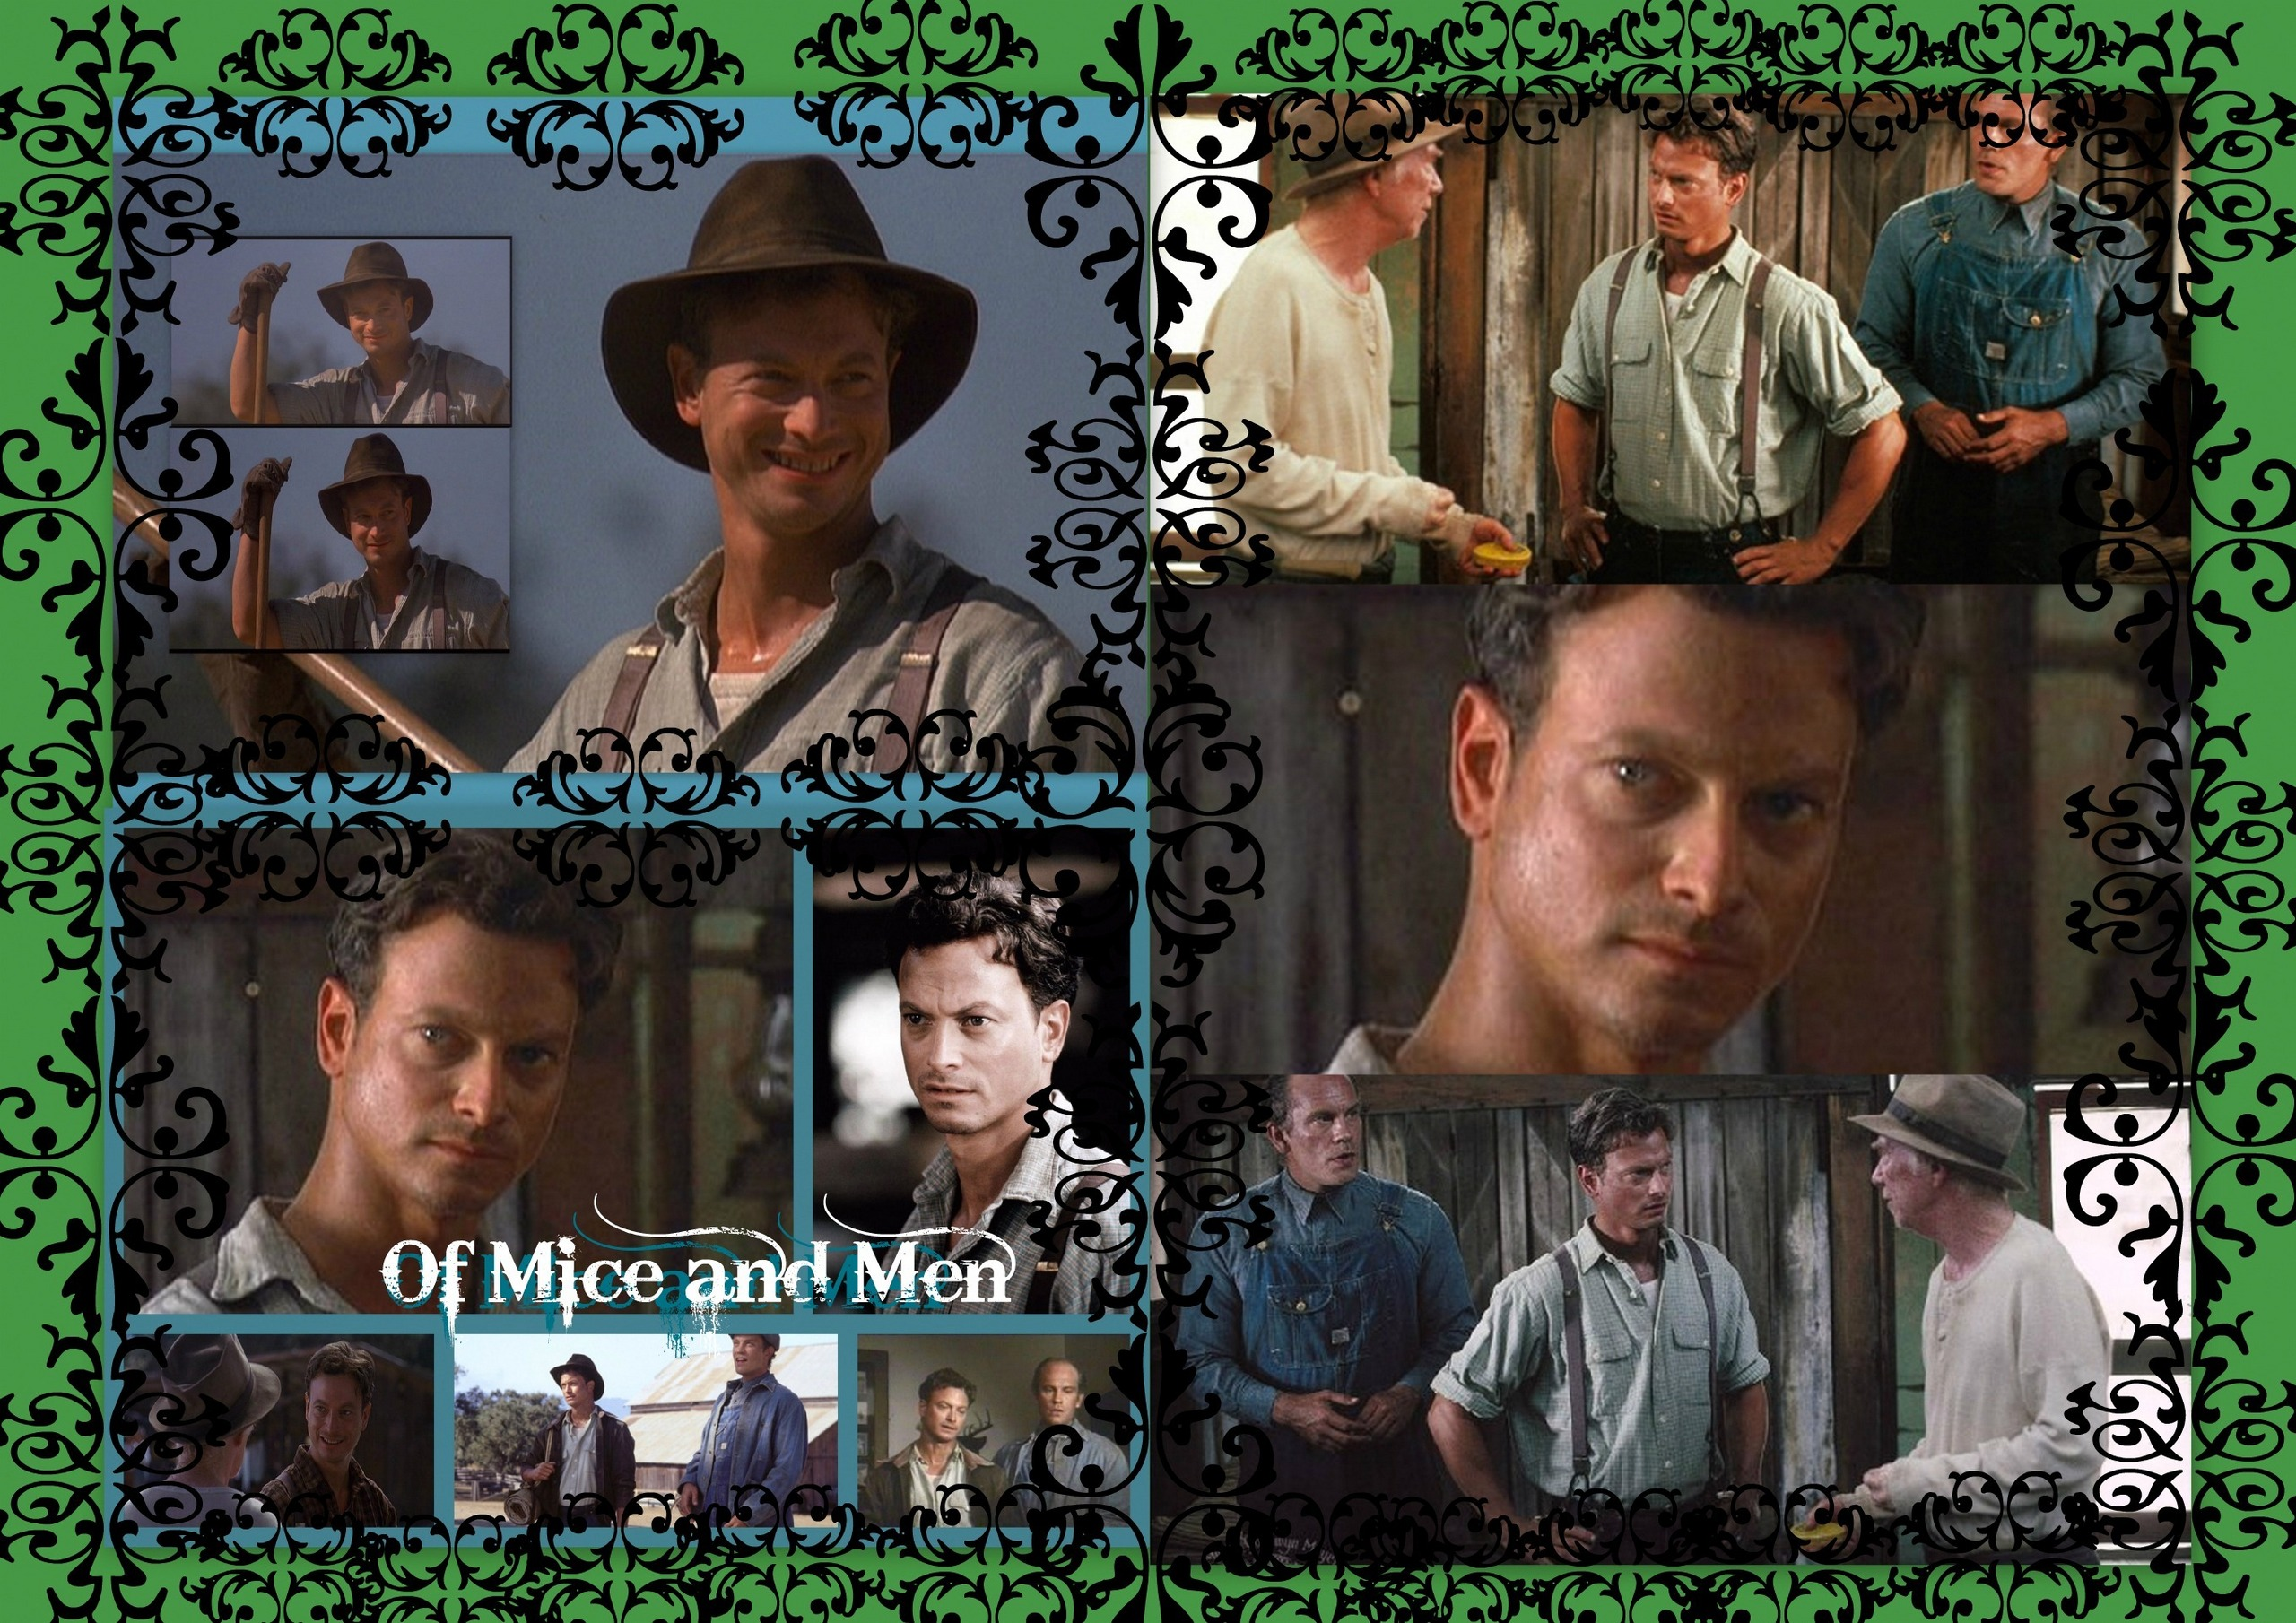 """of mice and men is a While the powerlessness of the laboring class is a recurring theme in steinbeck's work of the late 1930s, he narrowed his focus when composing of mice and men (1937), creating an intimate portrait of two men facing a world marked by petty tyranny, misunderstanding, jealousy, and callousness."